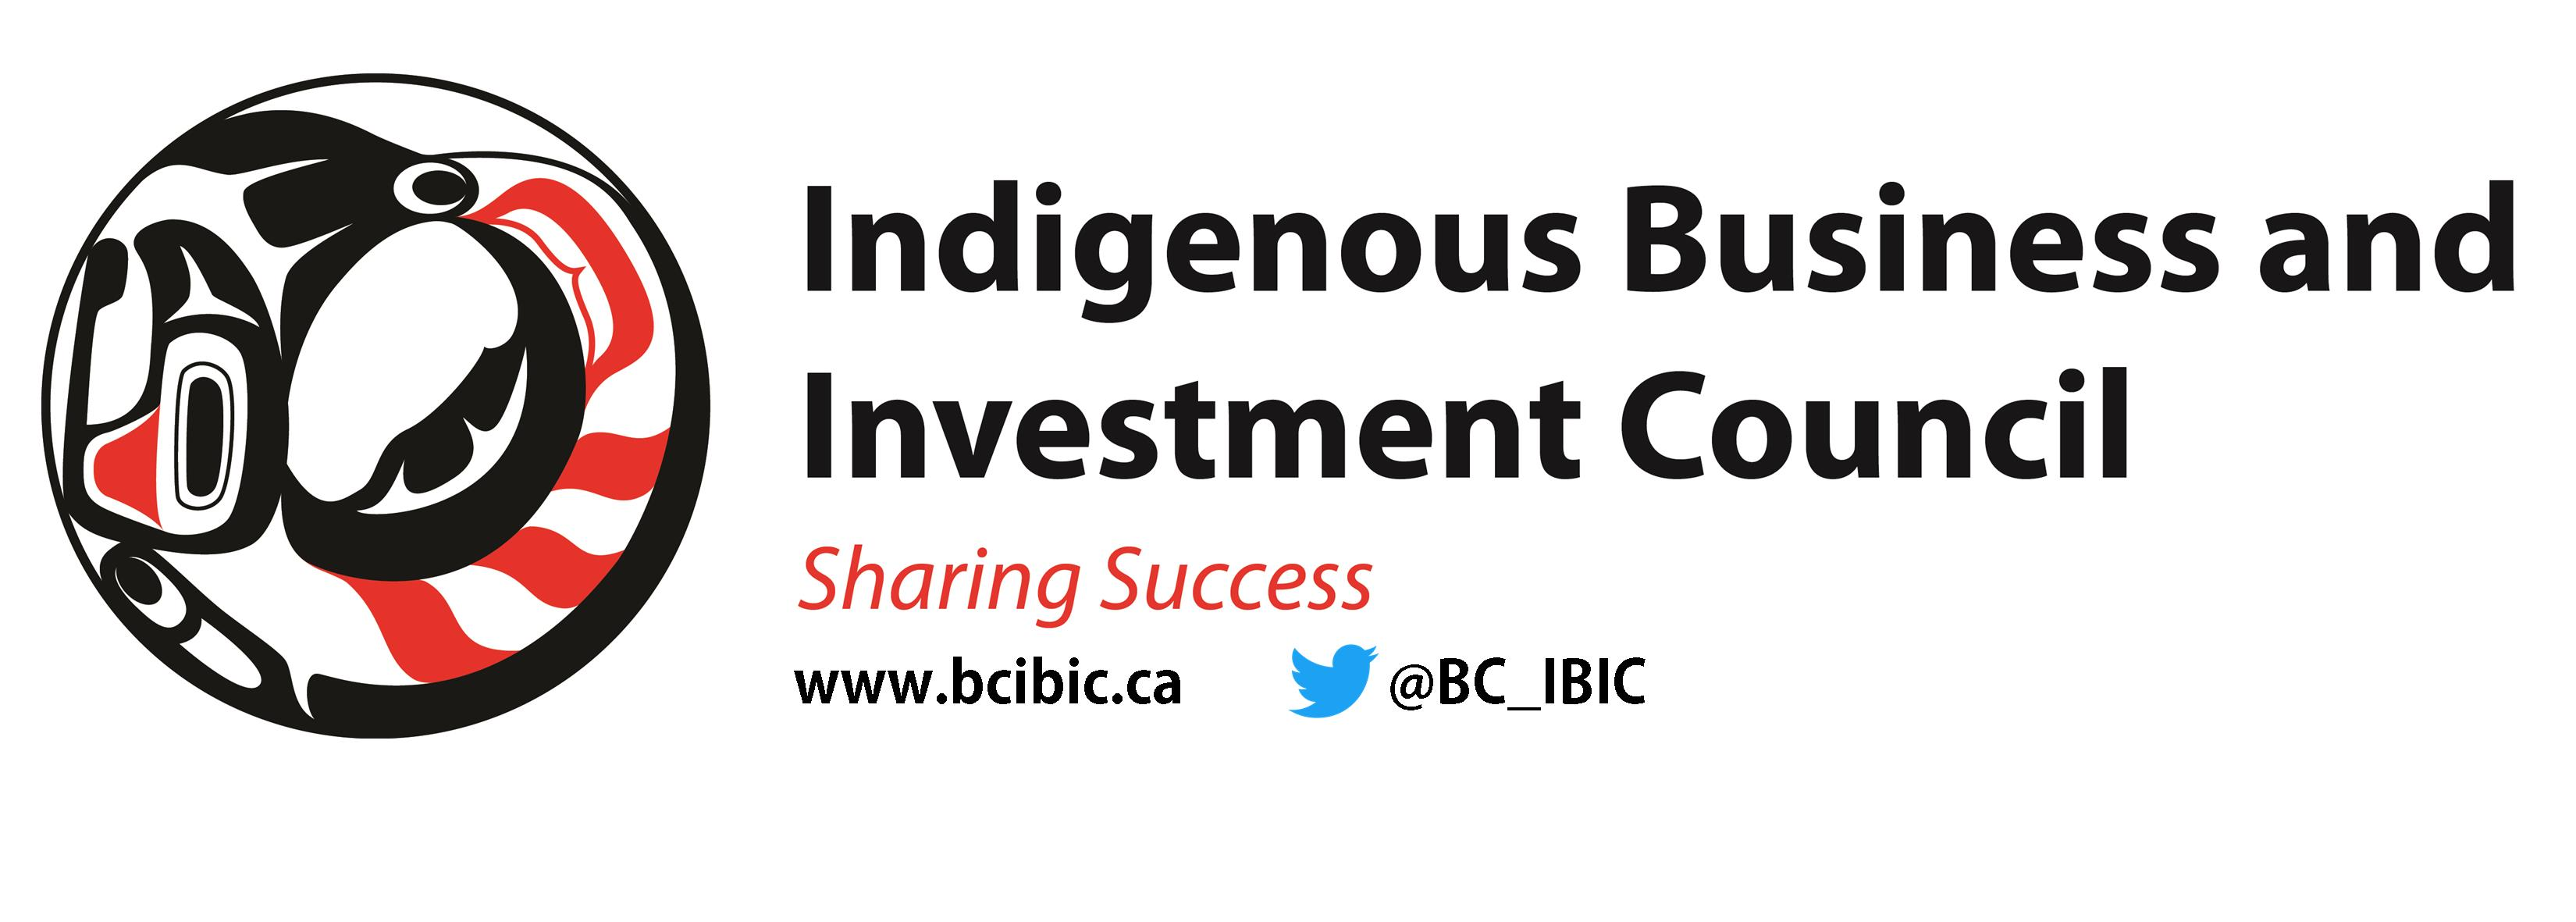 Indigenous Business and Investment Council Logo